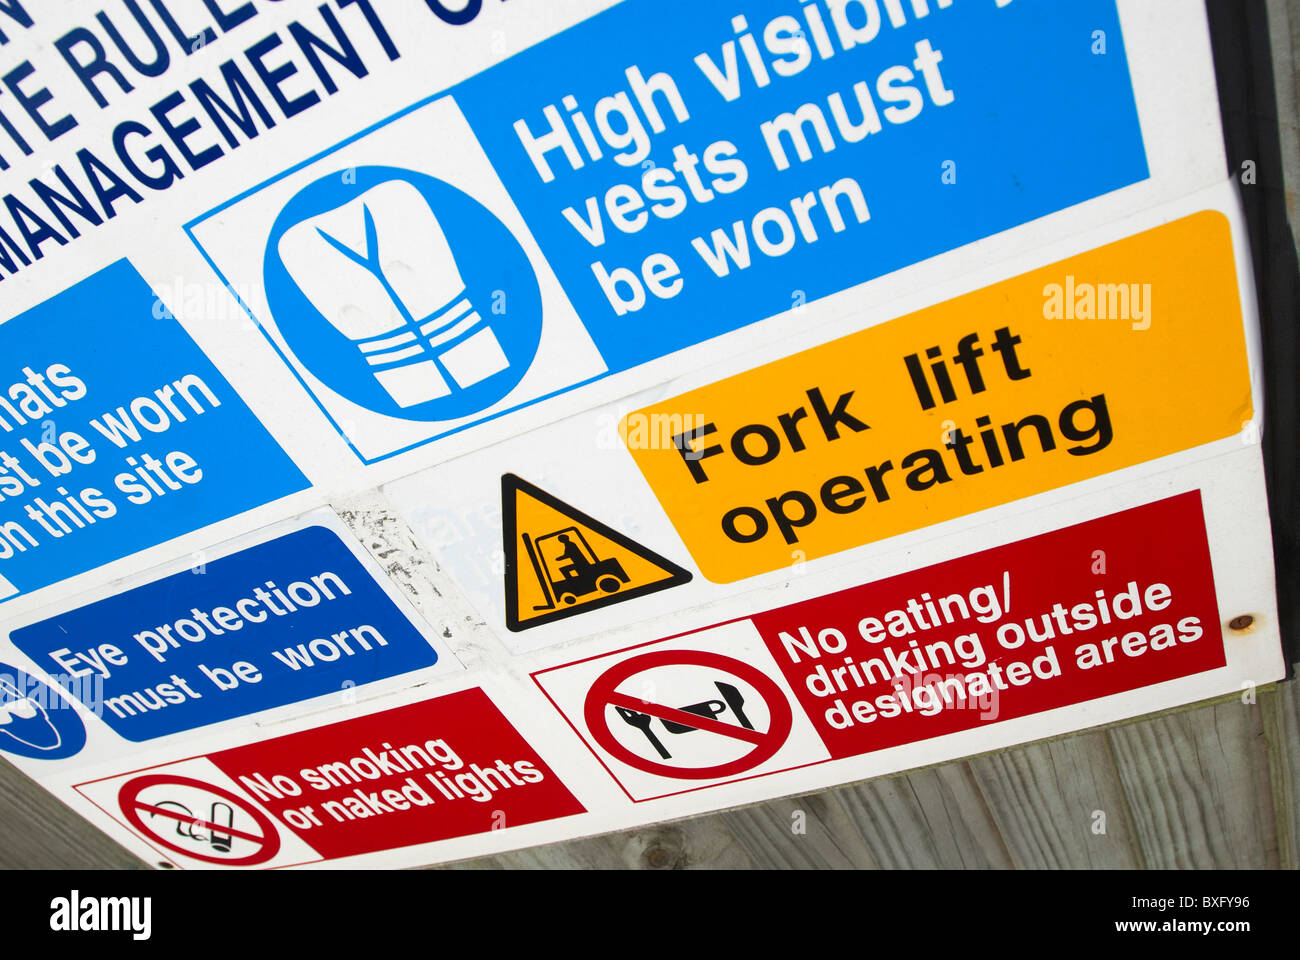 Site sign of rules and regulations - Stock Image